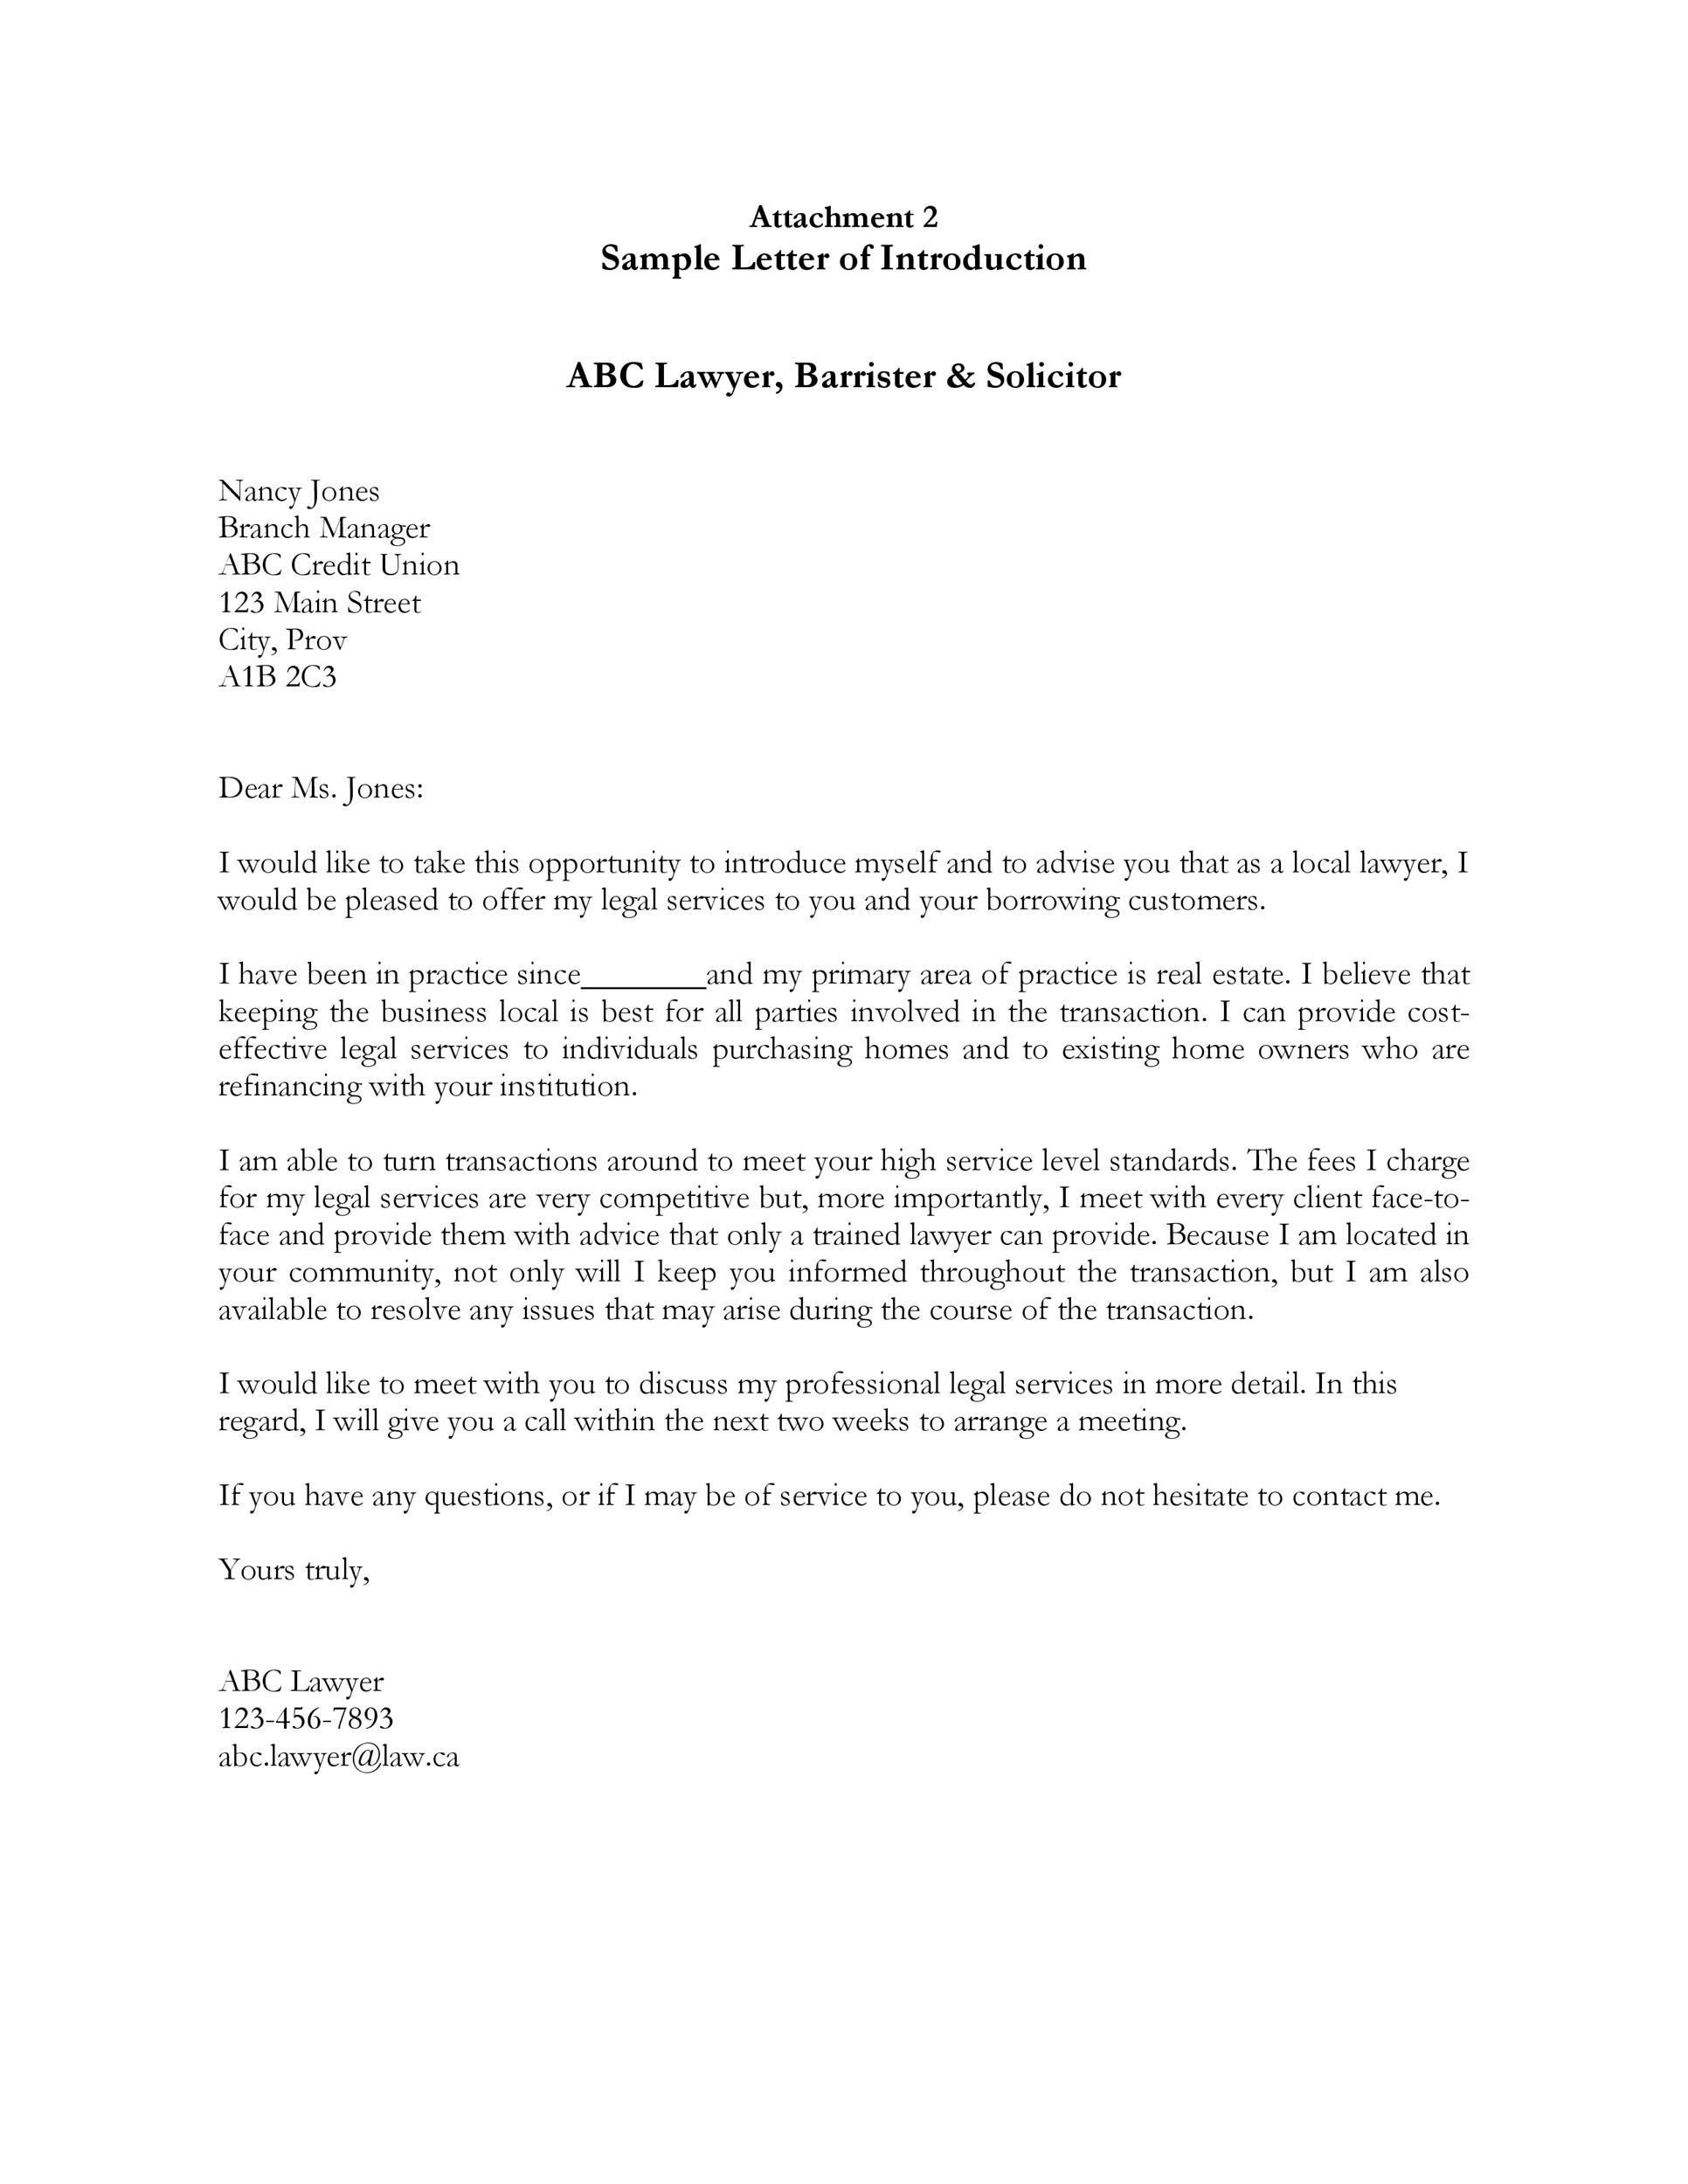 Free business introduction letter 23